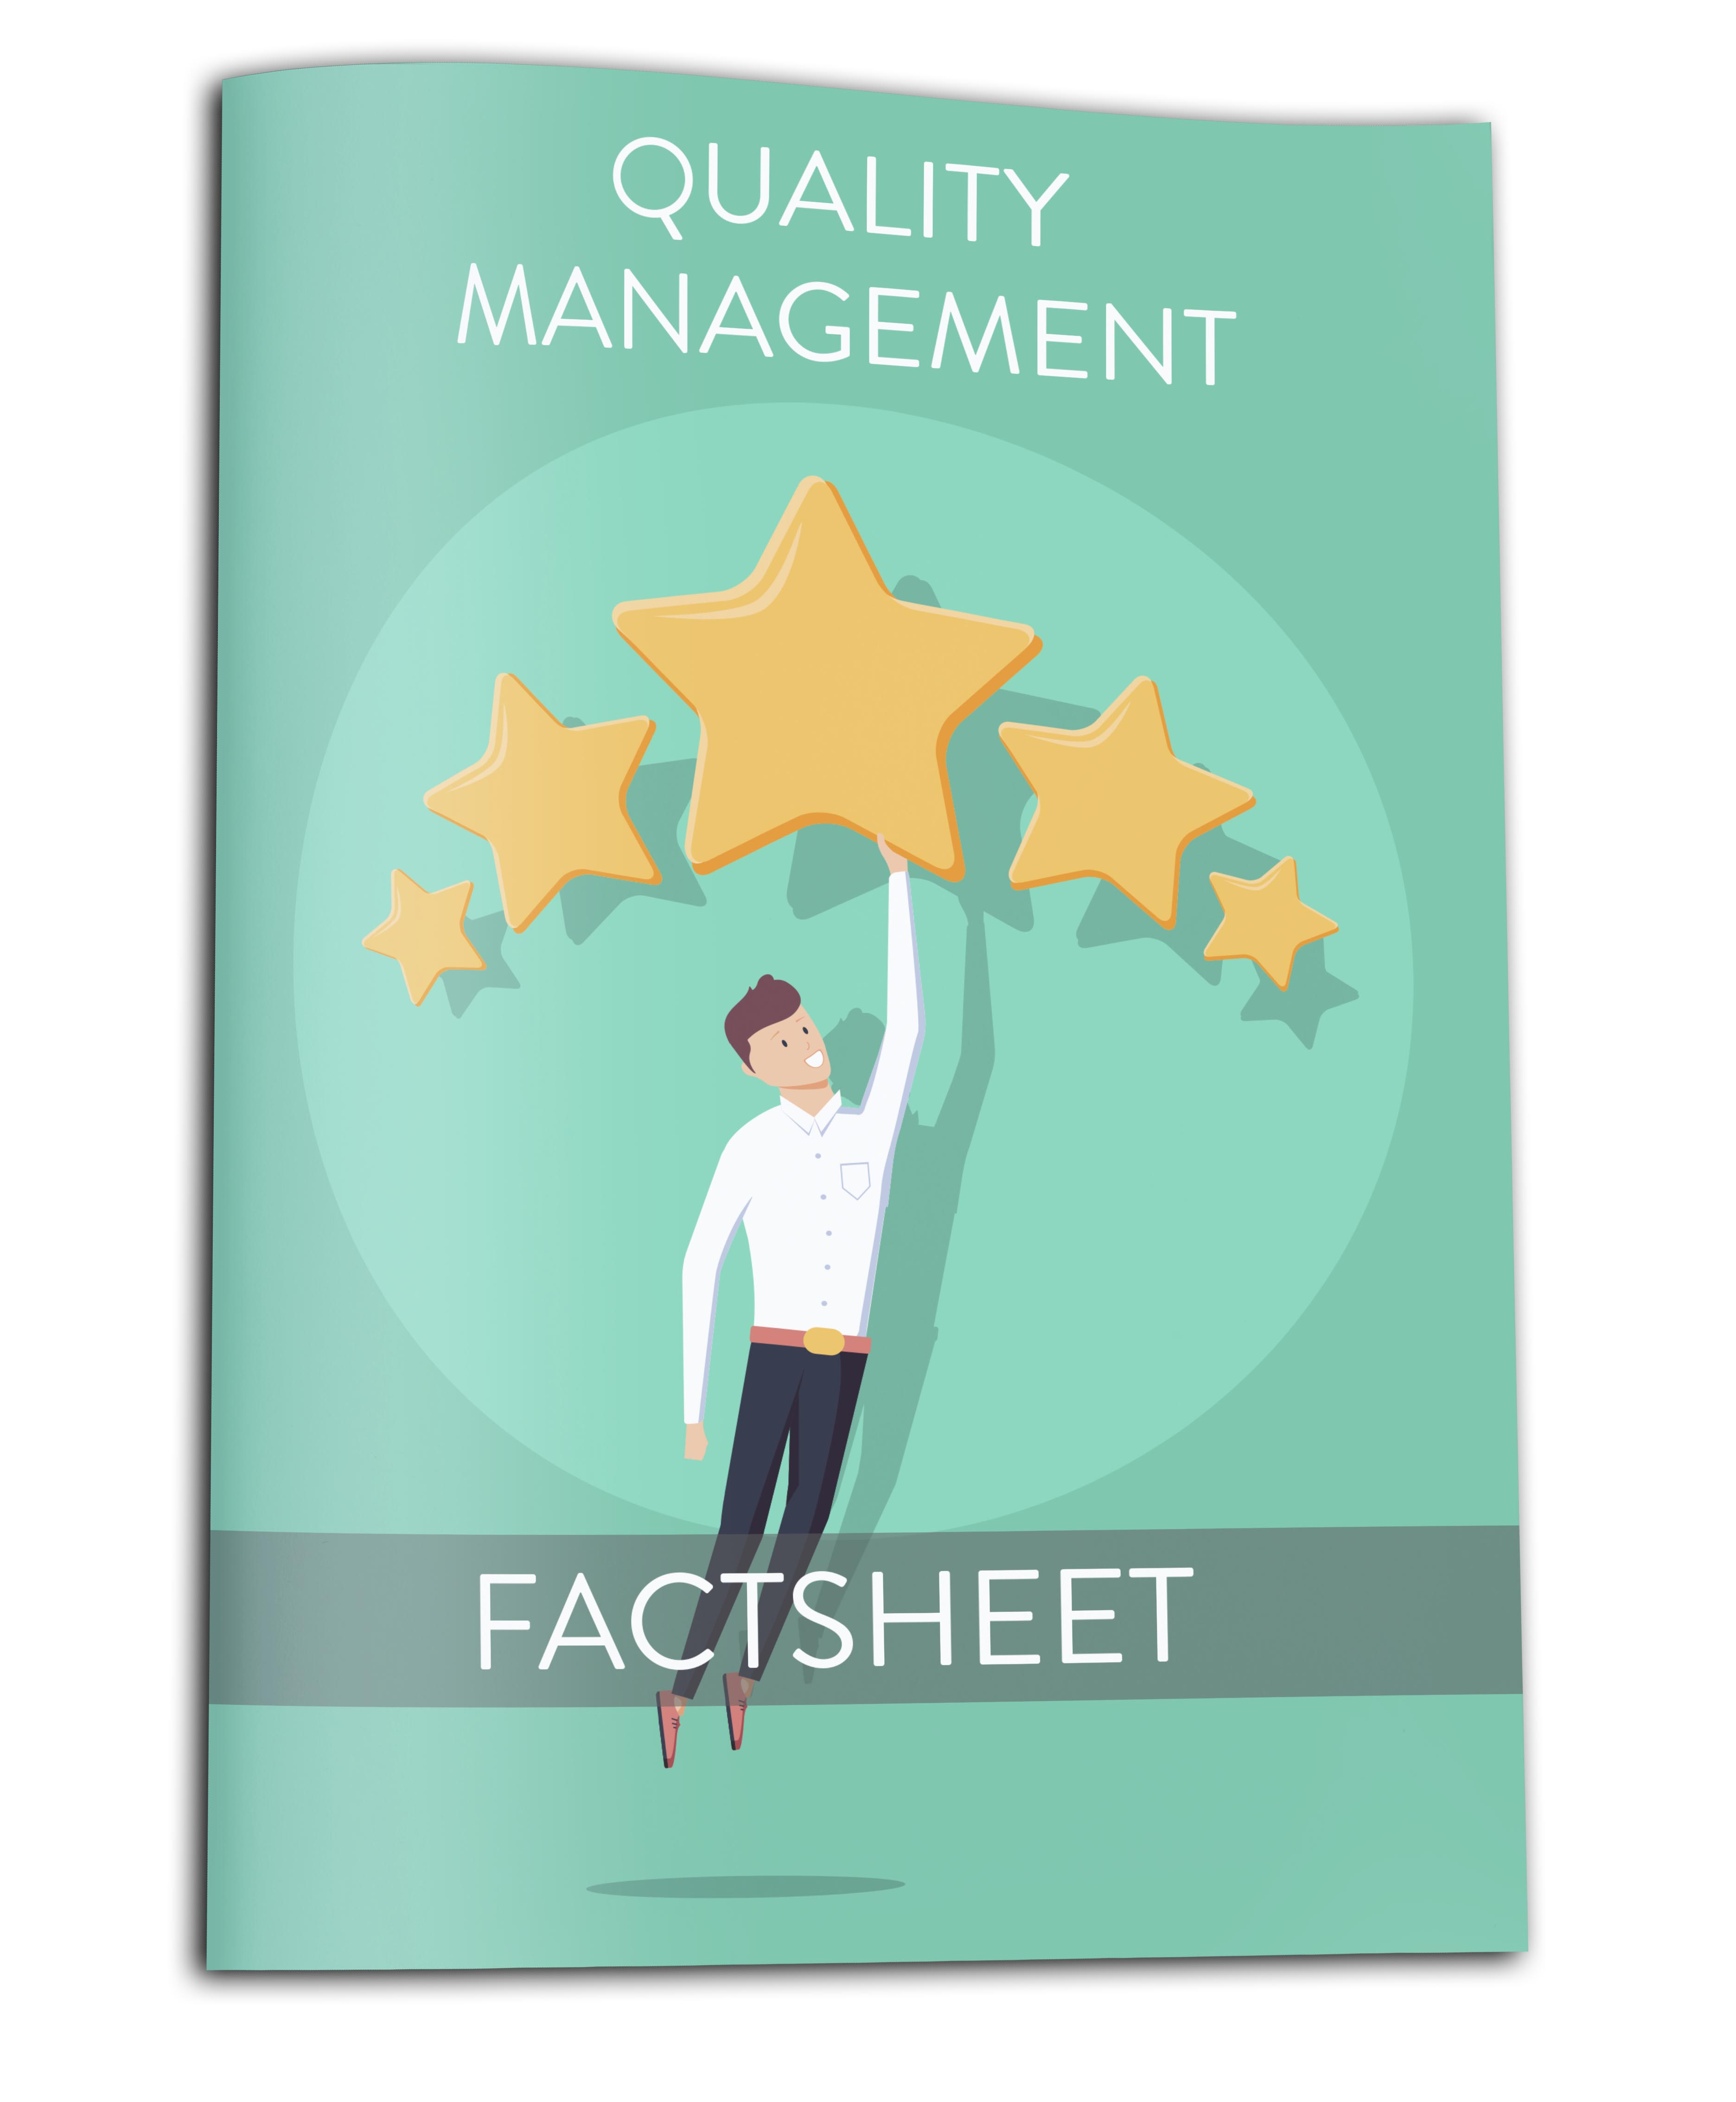 Factsheet Quality Management